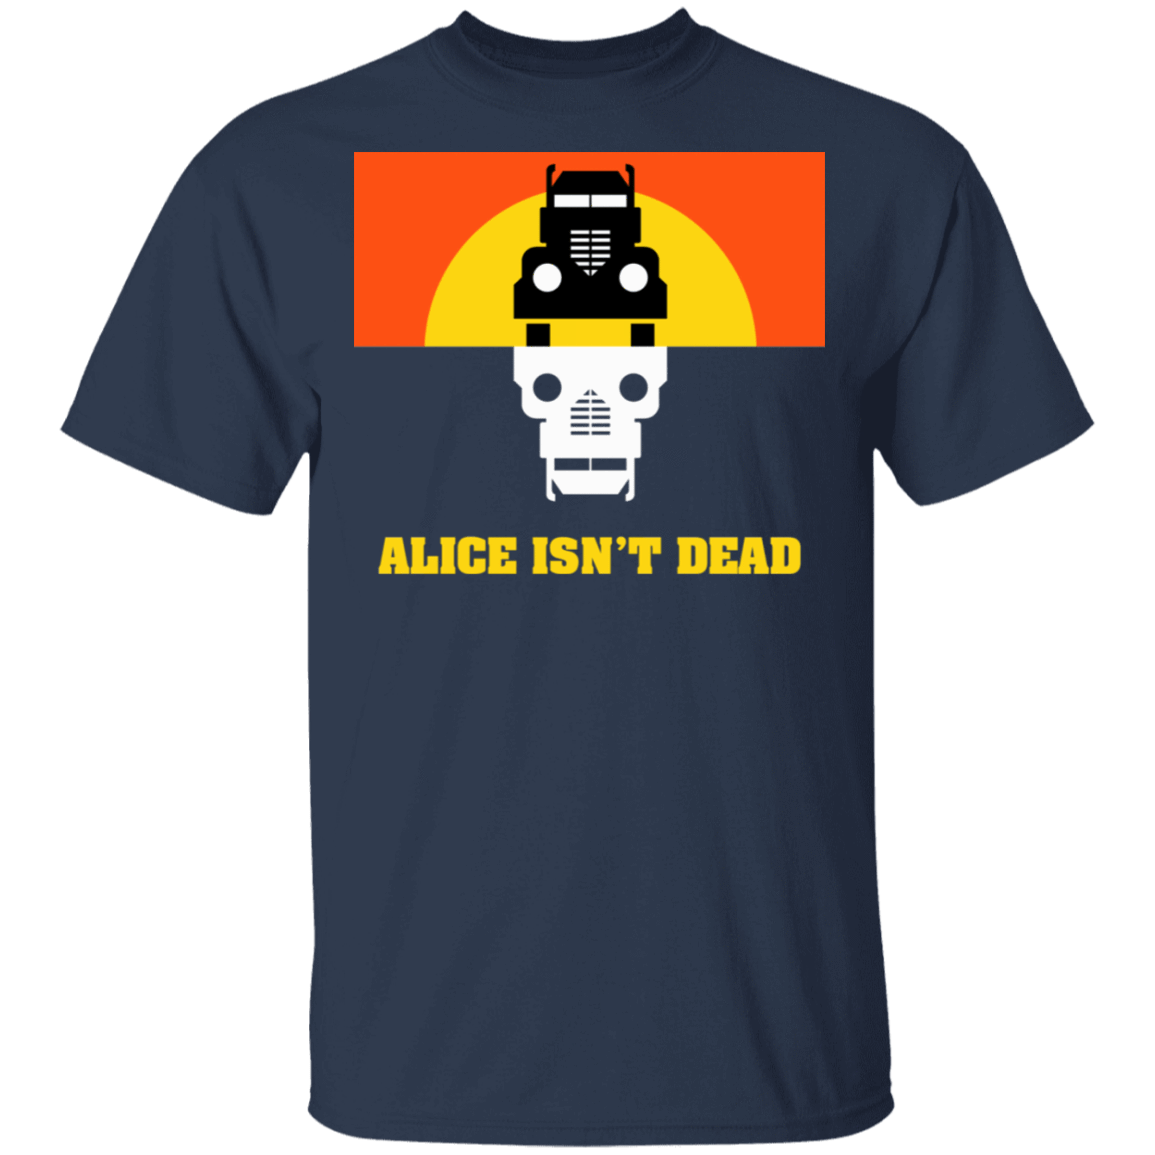 Alice Isn't Dead Logo T-Shirts, Hoodies 22-111-80183265-250 - Tee Ript